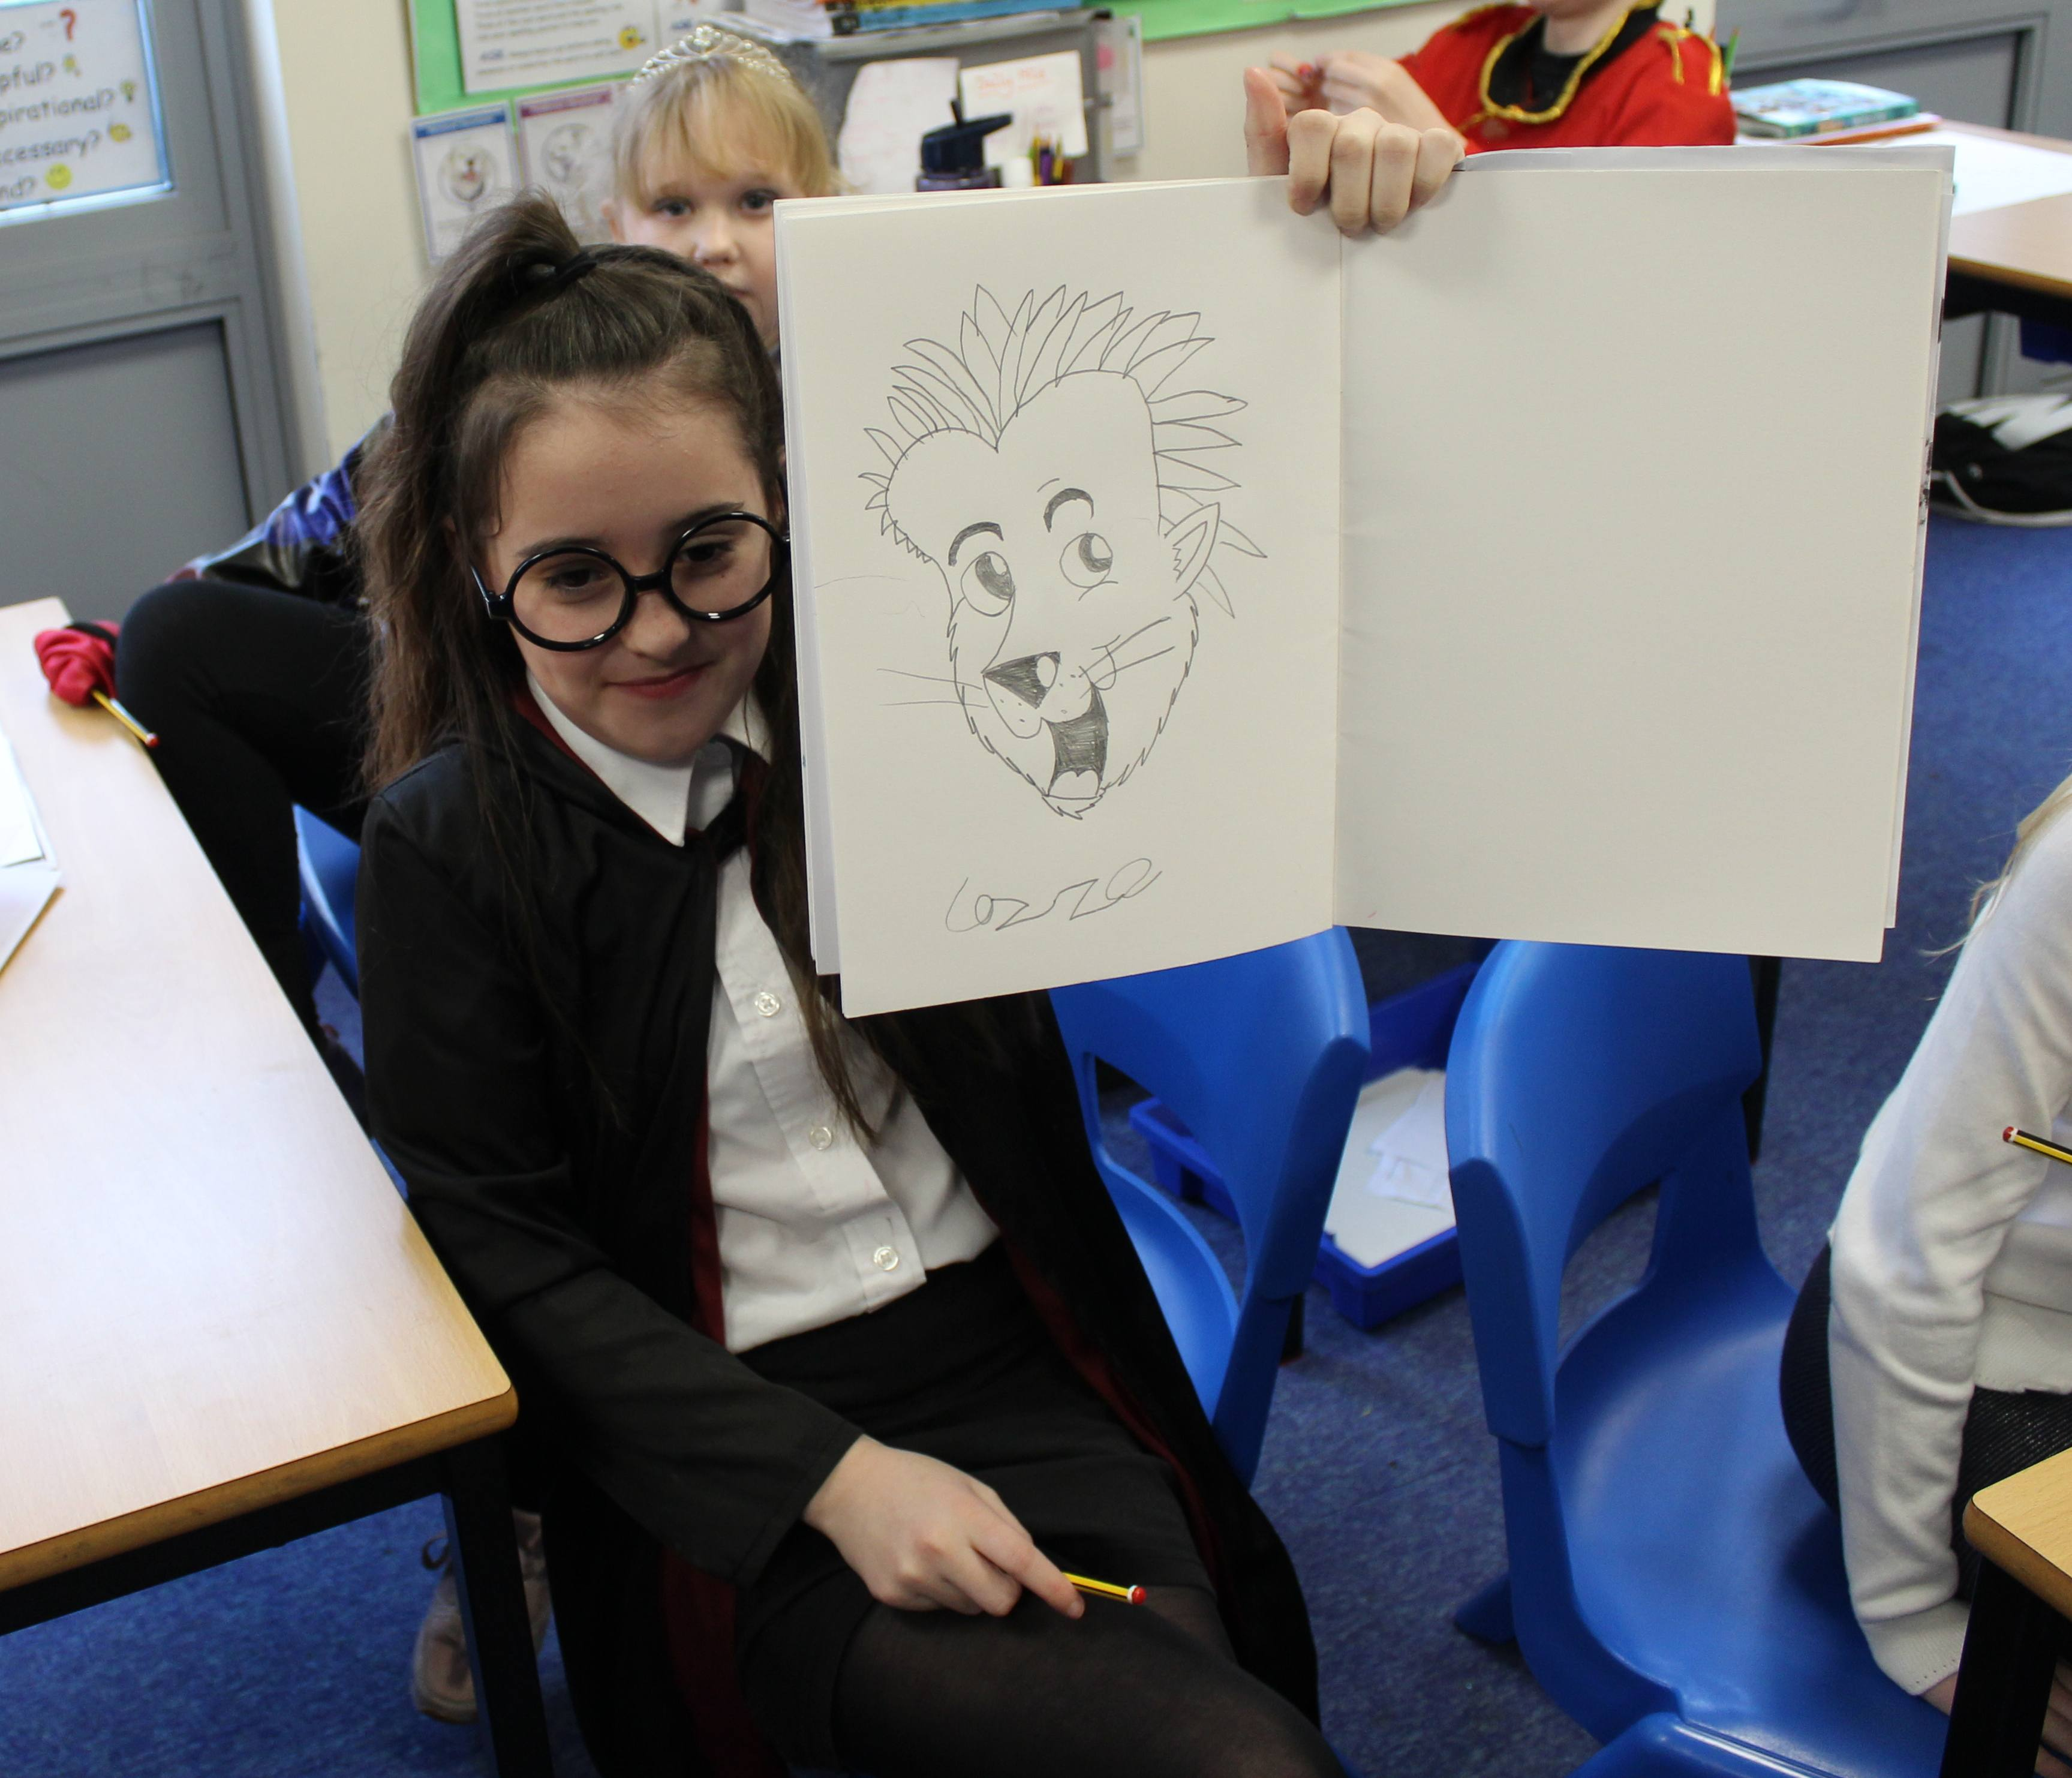 One of the children's versions of Beaulieu the Hedgehog